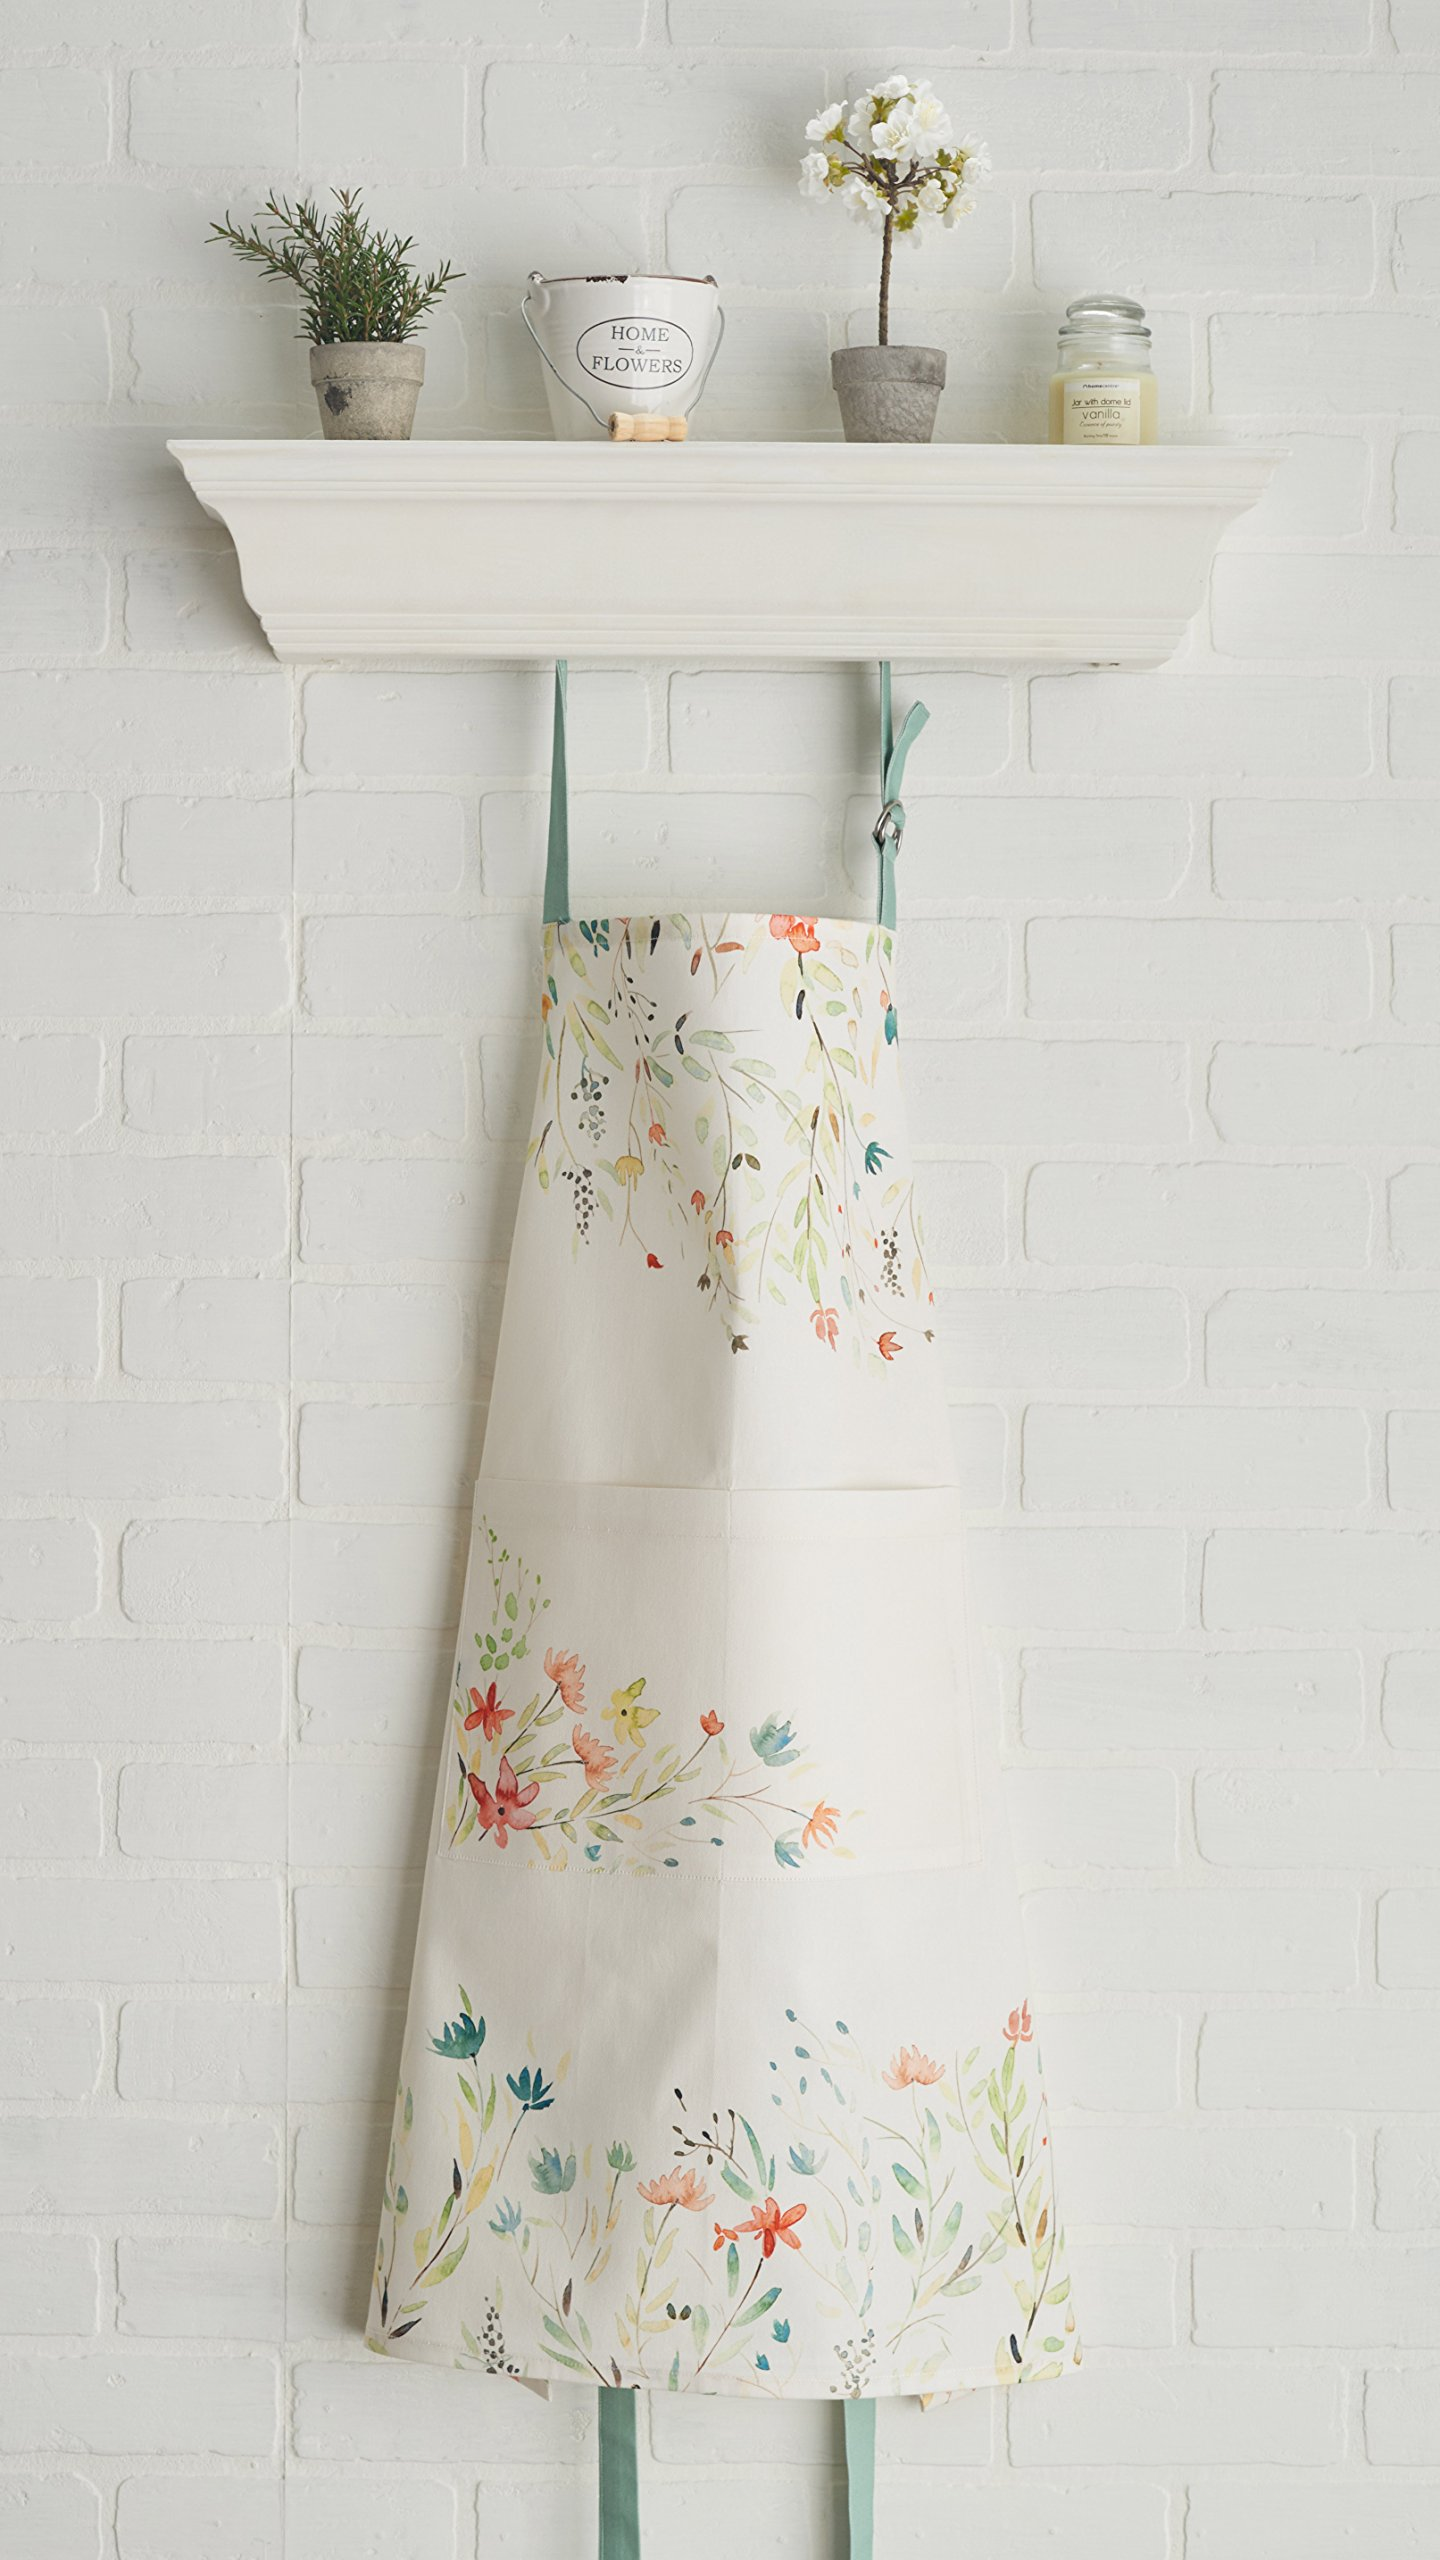 Maison d' Hermine Colmar 100% Cotton Apron with an adjustable neck & visible center pocket , 27.50 - inch by 31.50 - inch by Maison d' Hermine (Image #4)